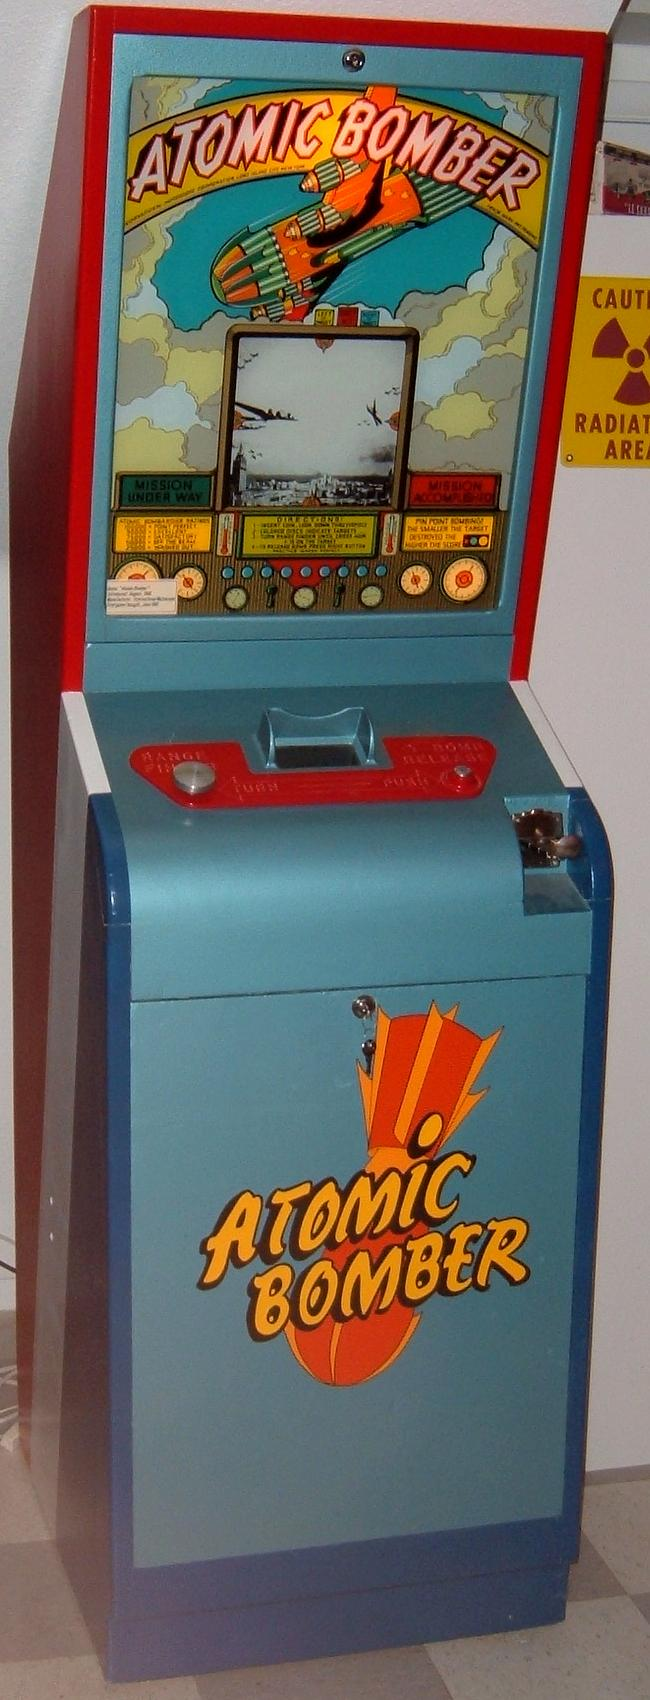 Mutoscope Atomic Bomber 1946 coin operated arcade game